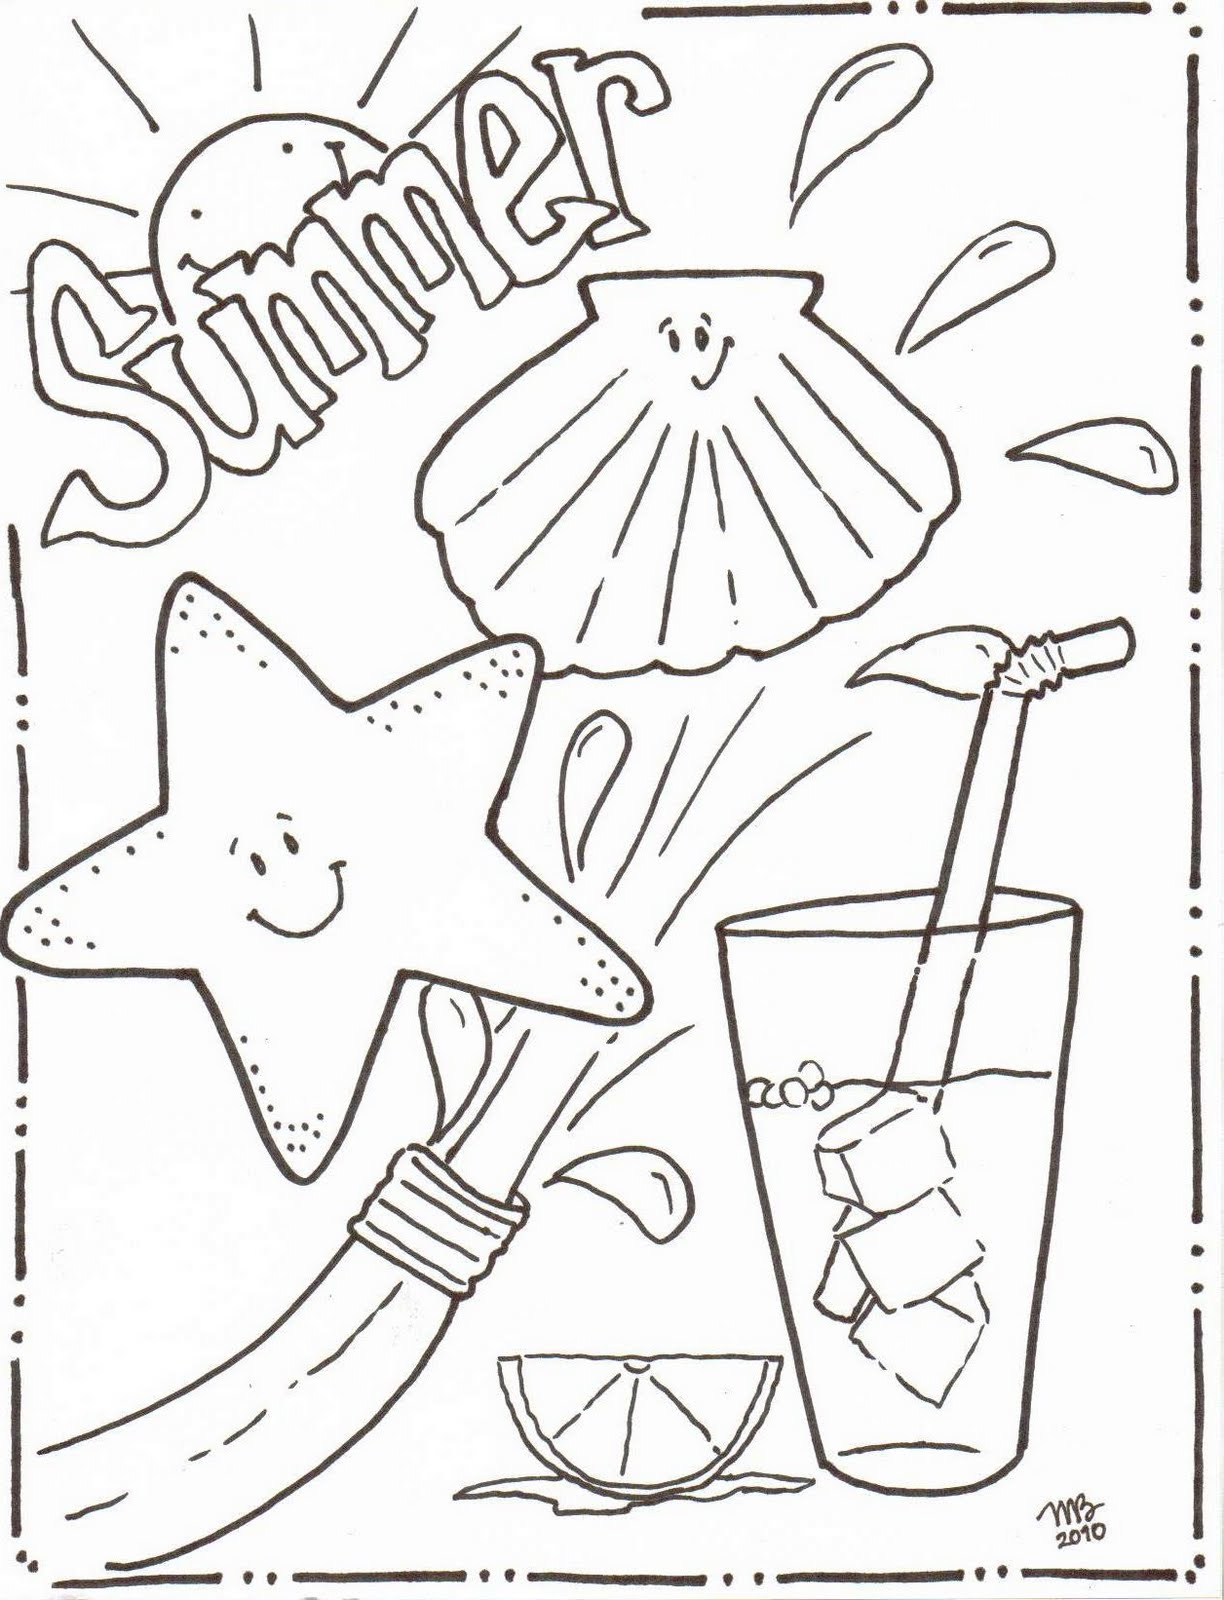 Michelle Kemper Brownlow Summer Coloring Pages Original Summertime Coloring Pages